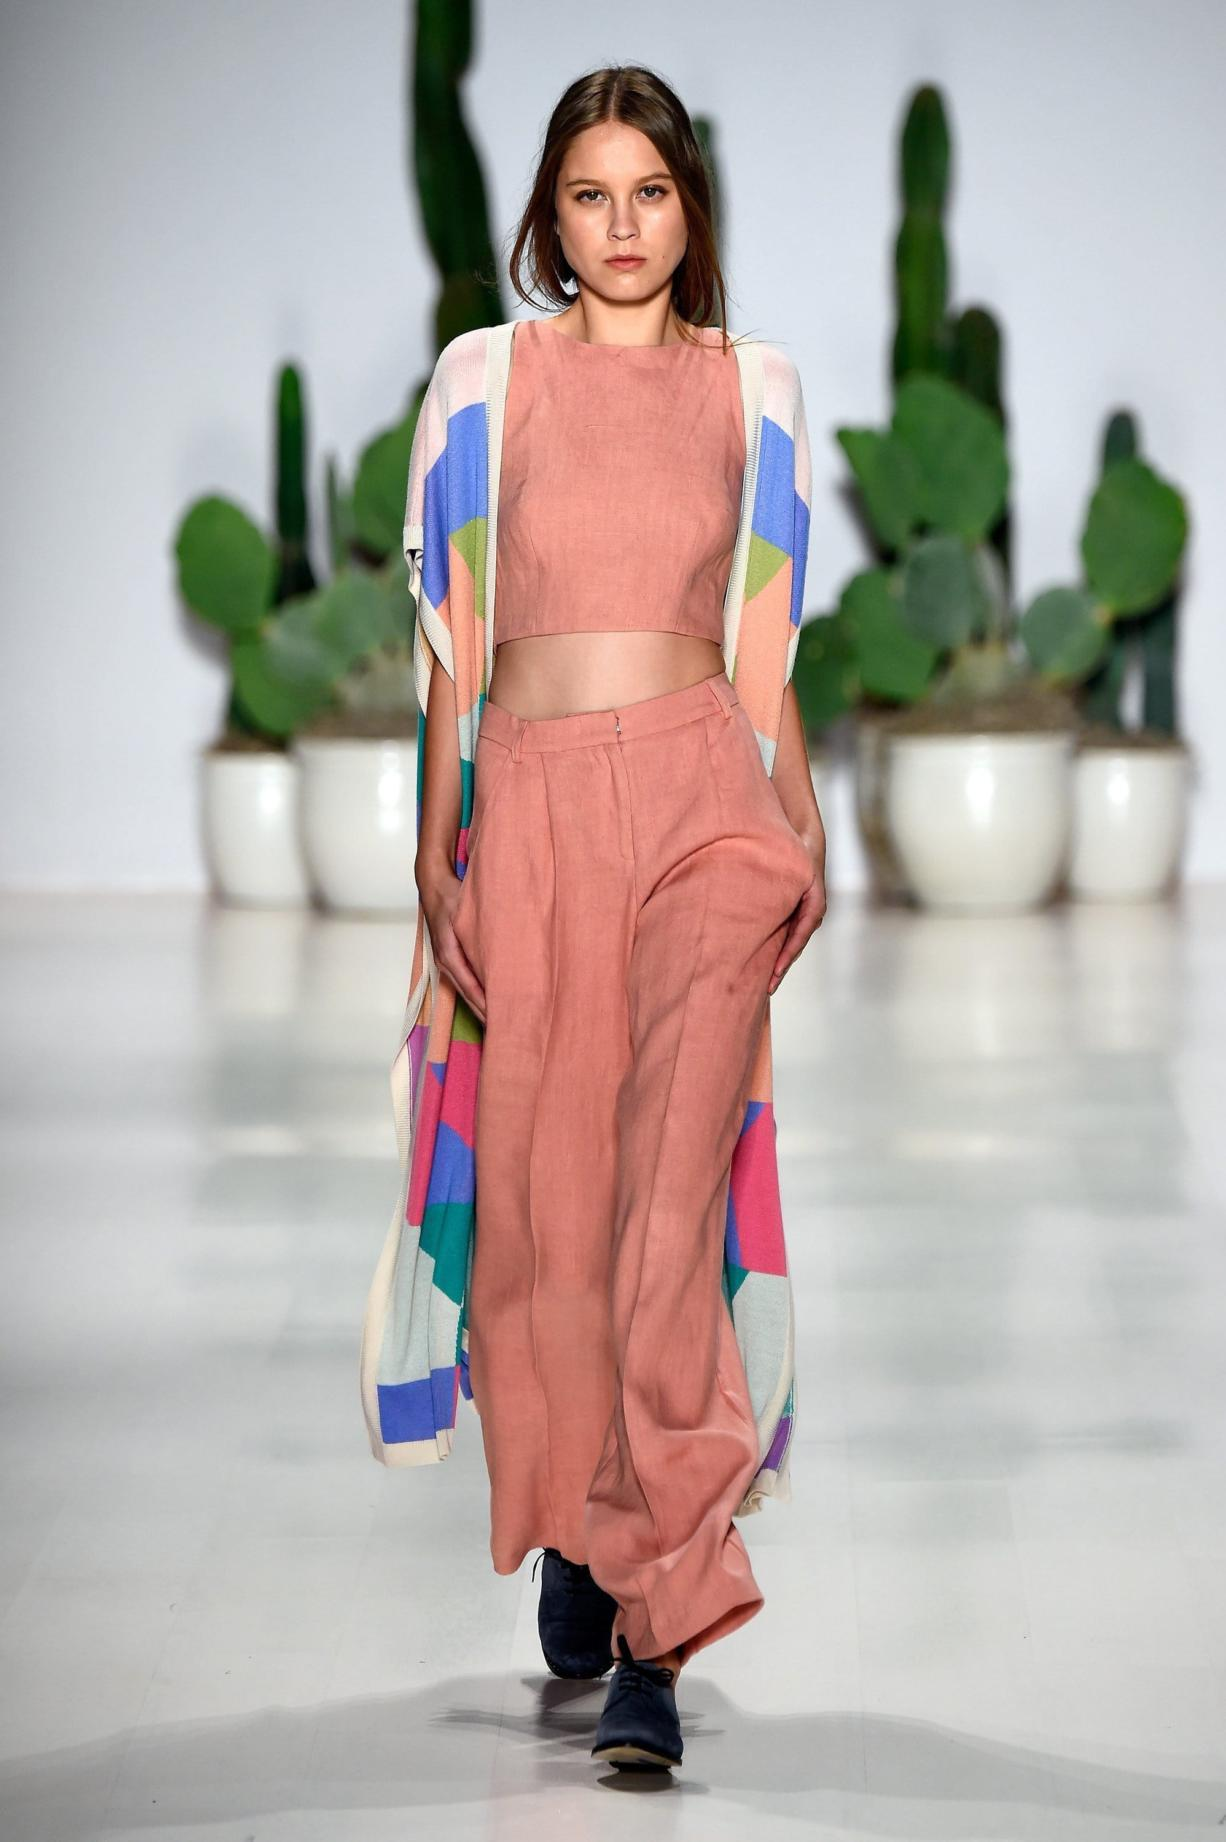 Models wearing pastels walk the runway at the Mara Hoffman fashion show Saturday during Mercedes-Benz Fashion Week Spring 2015 at The Salon at Lincoln Center in New York City.